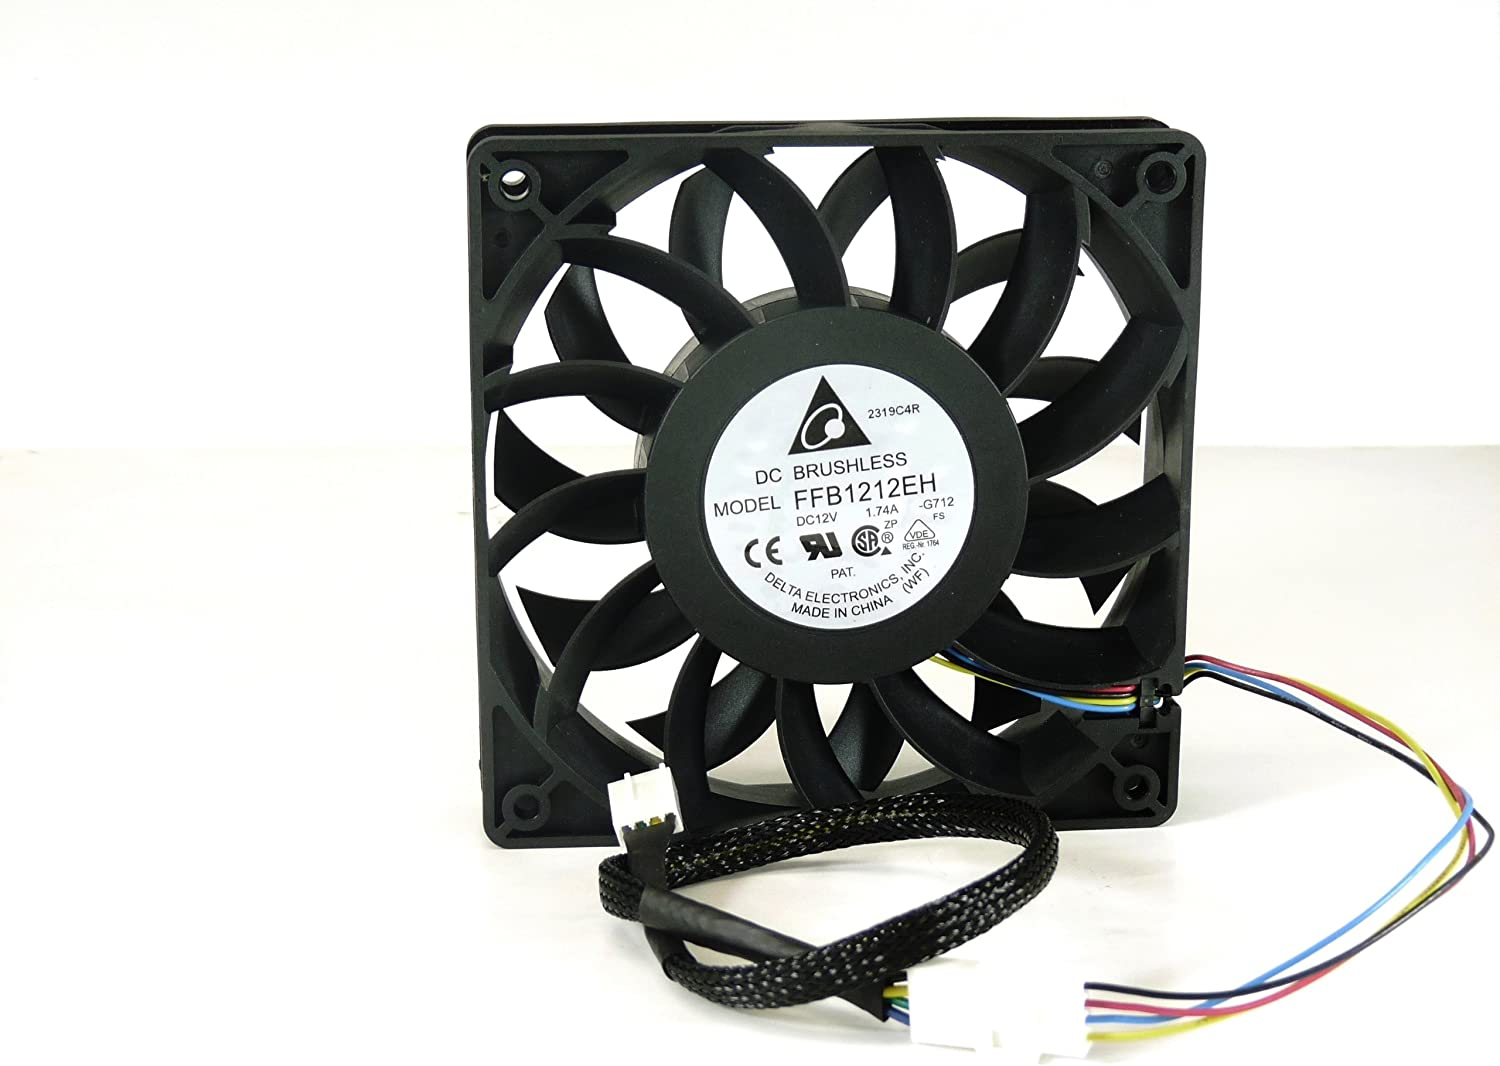 Delta Electronics FFB1212EH 120 x 120 x 25mm PWM Cooling Fan, 4000 RPM, 150.33 CFM, 56.4 dBA, 4-pin PWM connector